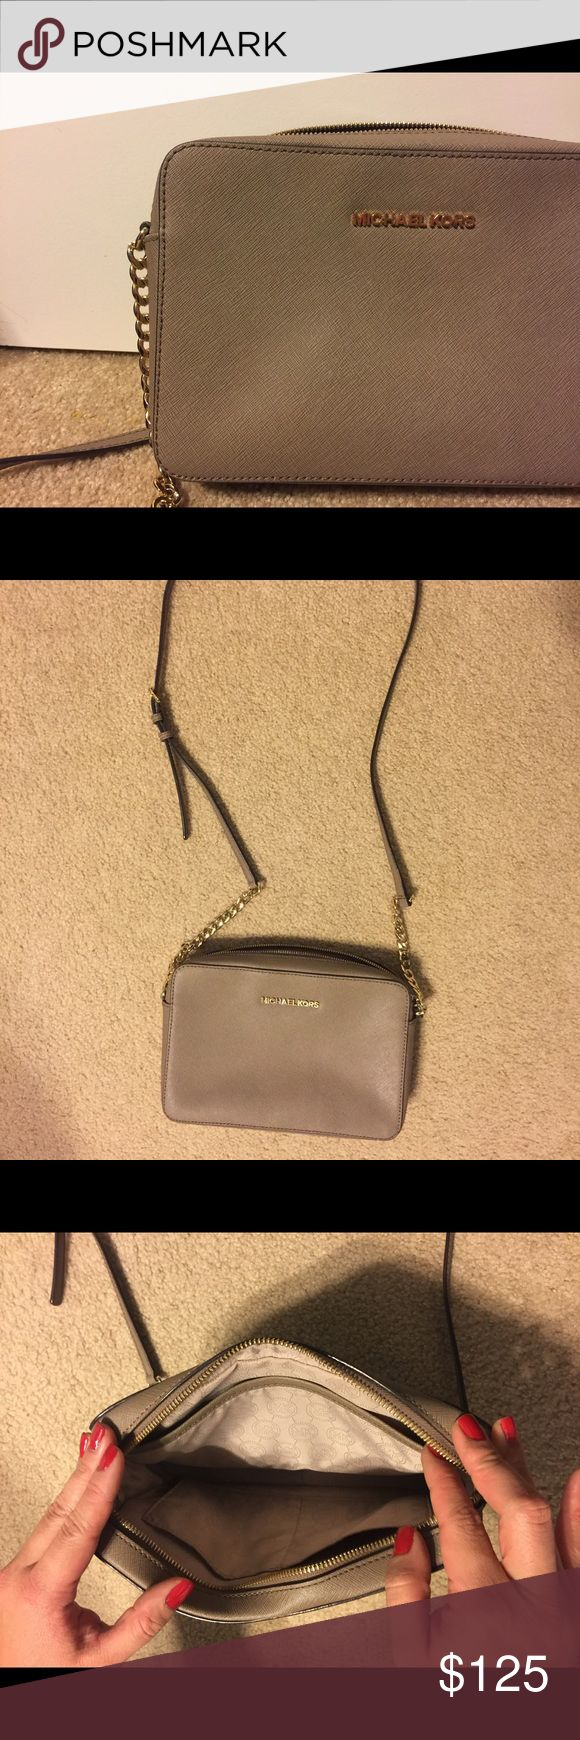 Michael Kors Jet Set large crossbody This is a gently used Michael Kors jet set large crossbody bag. The color is taupe. From my experience it has gone perfectly with every outfit for every occasion. There are no flaws with the bag except for a slight discoloration of the H on the front of the bag. The discoloration is not noticeable when wearing. A picture is posted with the discoloration seen. Hope you love it! Michael Kors Bags Crossbody Bags